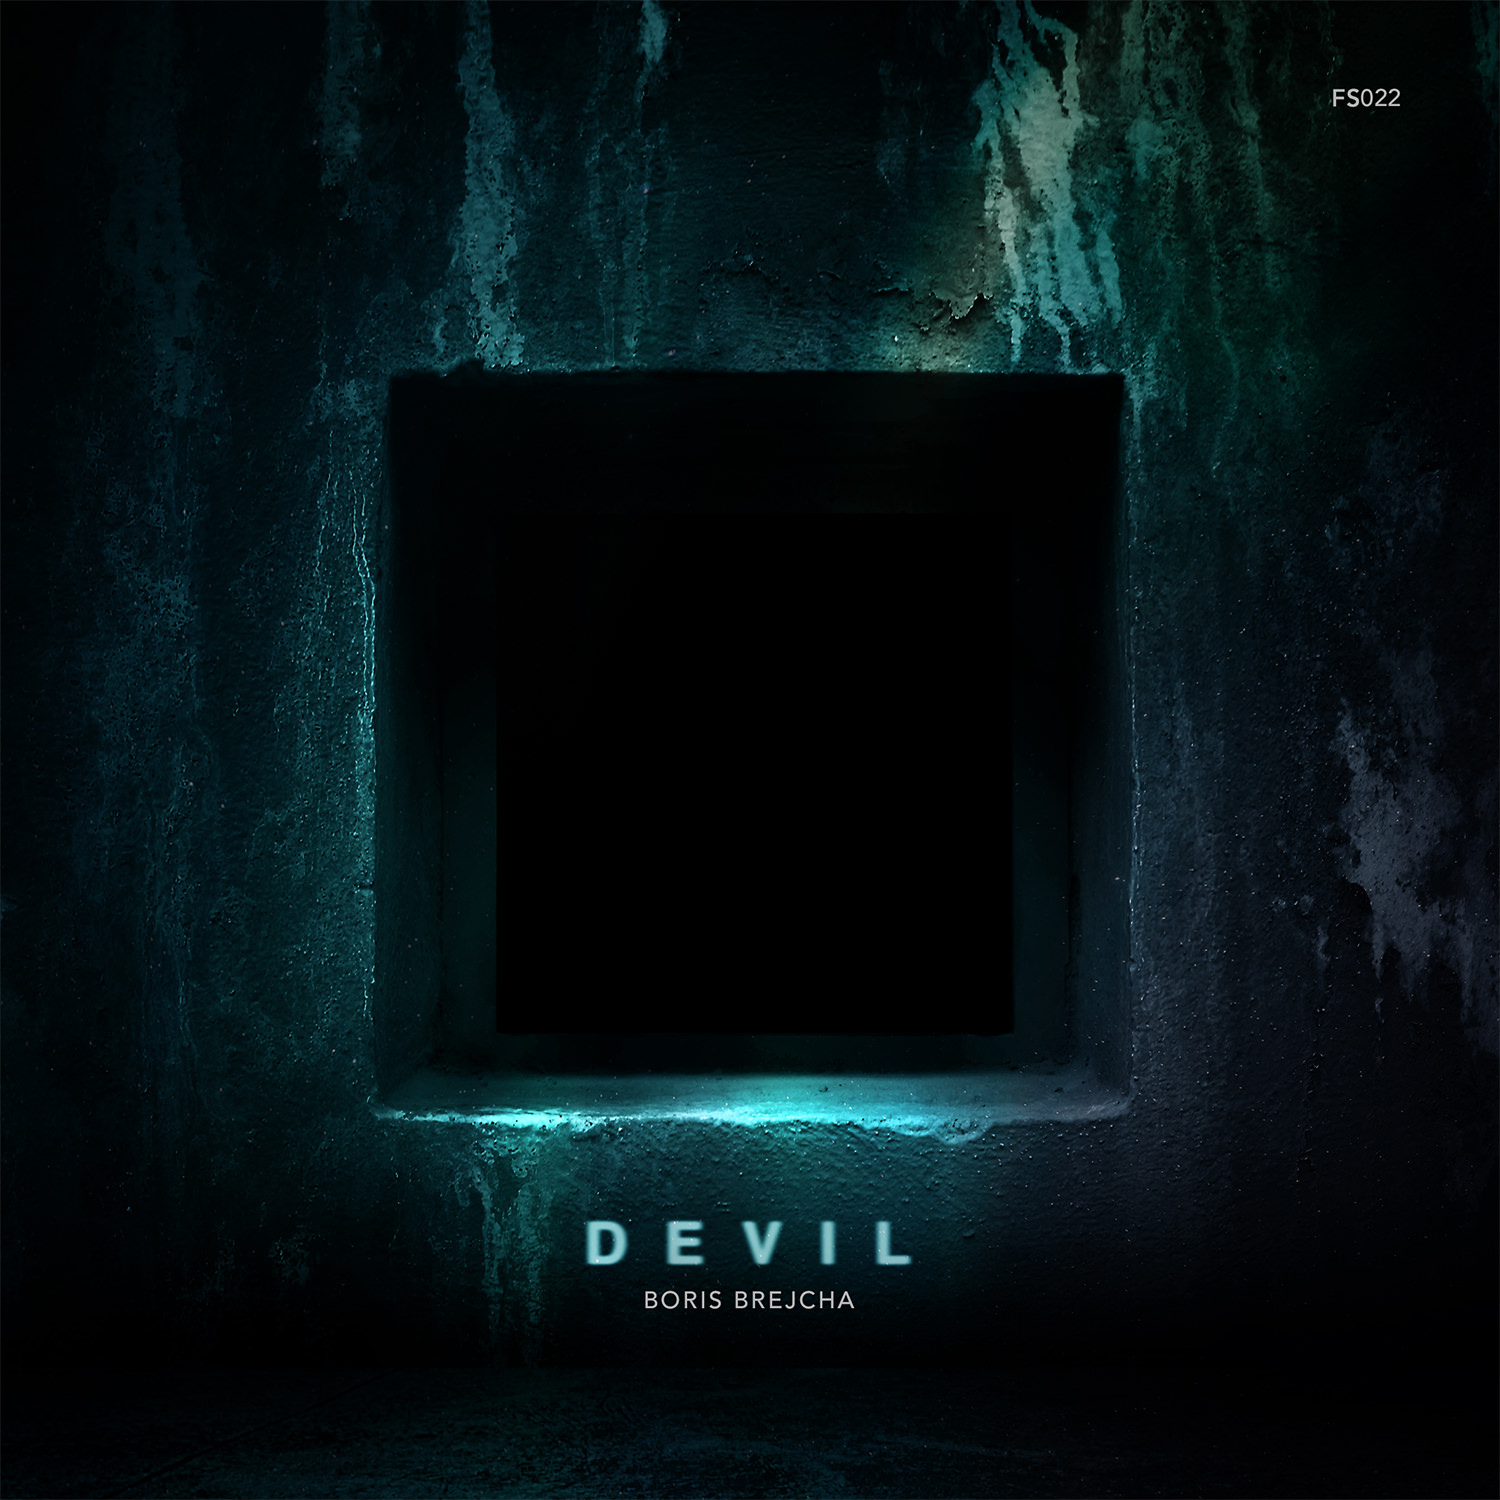 """DEVIL - BORIS BREJCHACalling an EP """"Devil"""" although it will most certainly conjure a smile on the face of any elctronic music enthusiast might come as a surprise, or even cause confusion.But let's be fucking serious, when Boris Brejcha picked this title, he had probably no evil thoughts in mind but was rather daydreaming of one of his many shows that are known to turn any club into a diabolically hot sweat lodge due to the energetic atmosphere and ecstatic crows.So in the end you could arque that the title of his new EP seems long overdue.The name giving A-Side comes as clean and to the point as we know it from Boris Brejcha.A rolling beat that never looks back but marches forward, driven by pure energy and nifty as hell.Let the speaking devil suck you into this dark piece of High-Tech Minimal and join the ride for almost the minutes.Right from the start """"The Darkest Night"""" reveals an even groovier drive that makes it sound unstoppable. Furthermore the track turns out to be an emotional rollercoaster in the form of a roaring and intimidating fanfare that fades in and out before a catchy melody line spreads a thoughtful and intimate atmosphere. This B-side will definitely make you want to go for another round…and another round…Last but not least this """"devilish"""" EP will end """"In The Middle Of Nowhere"""". But unlike the name implies, Boris Brejcha is taking you right to his musical epicenter.Expect one of Boris' most multifaceted tracks that prove why his career continues to skyrocket.Meet the """"Devil"""" and the humble man behind the EP: meet Boris Brejcha.__SpotifyApple musicBeatport"""